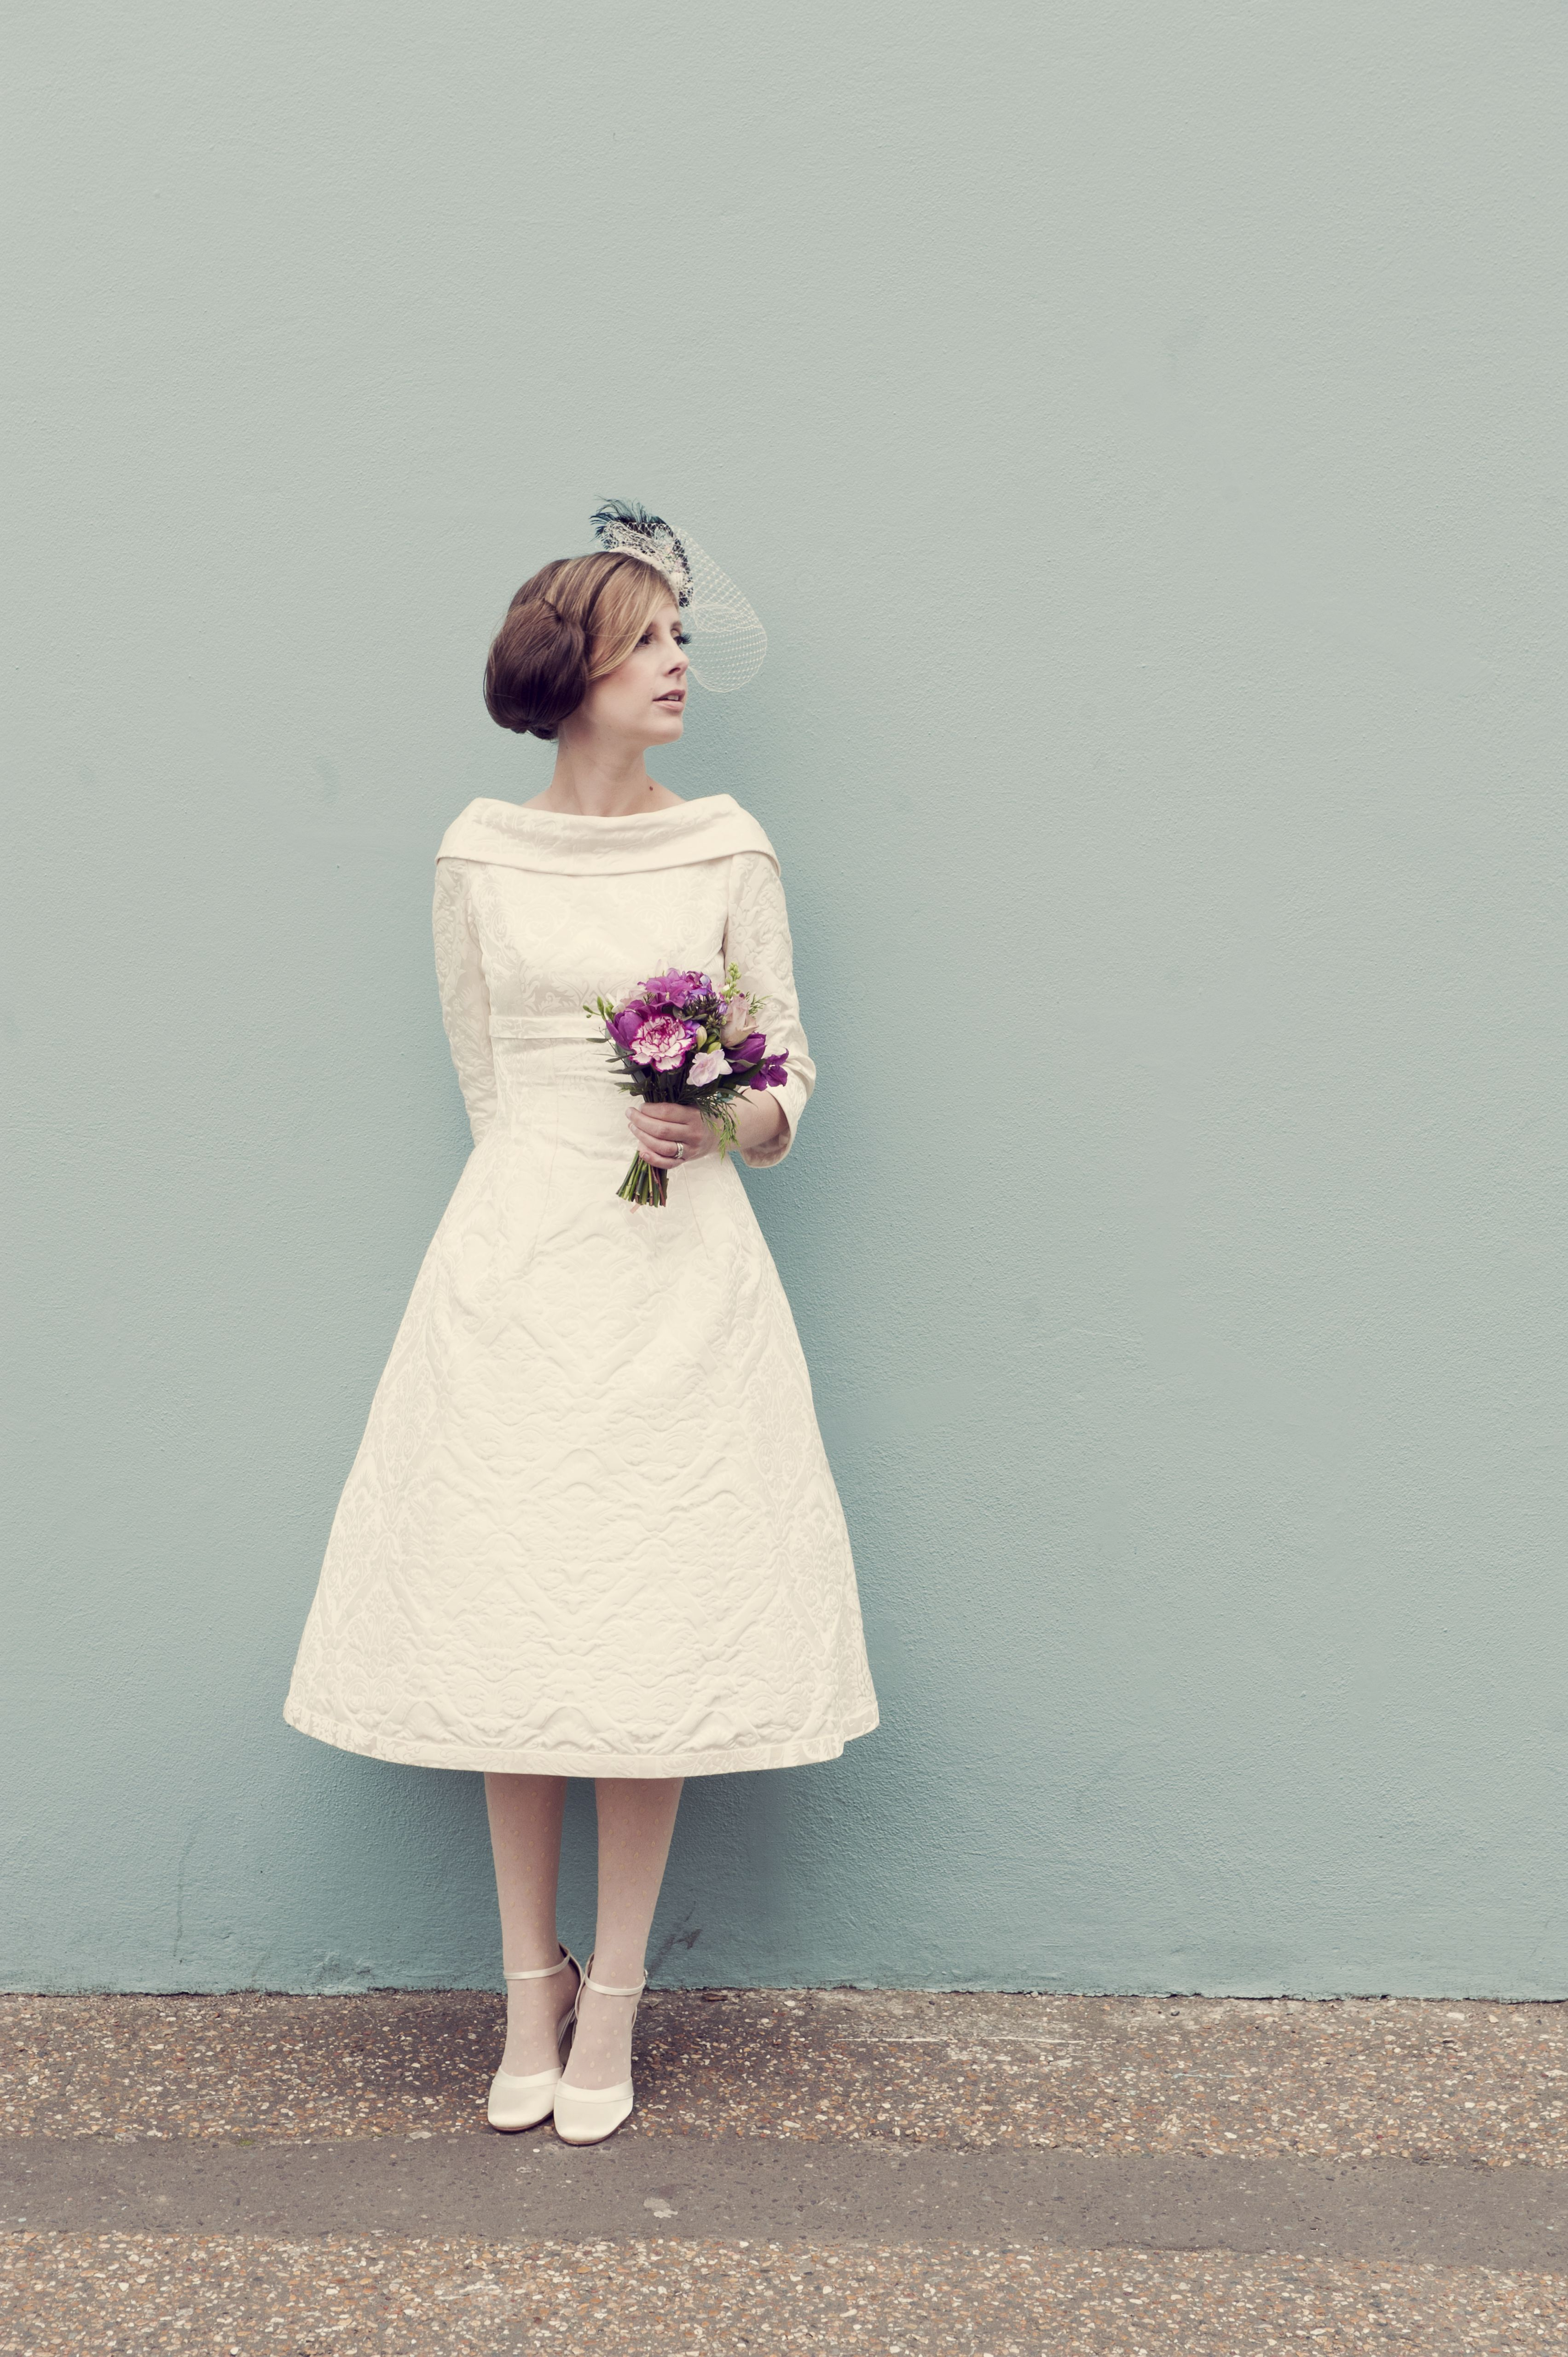 Sussex based vintage style photographer quirky fun wedding bride